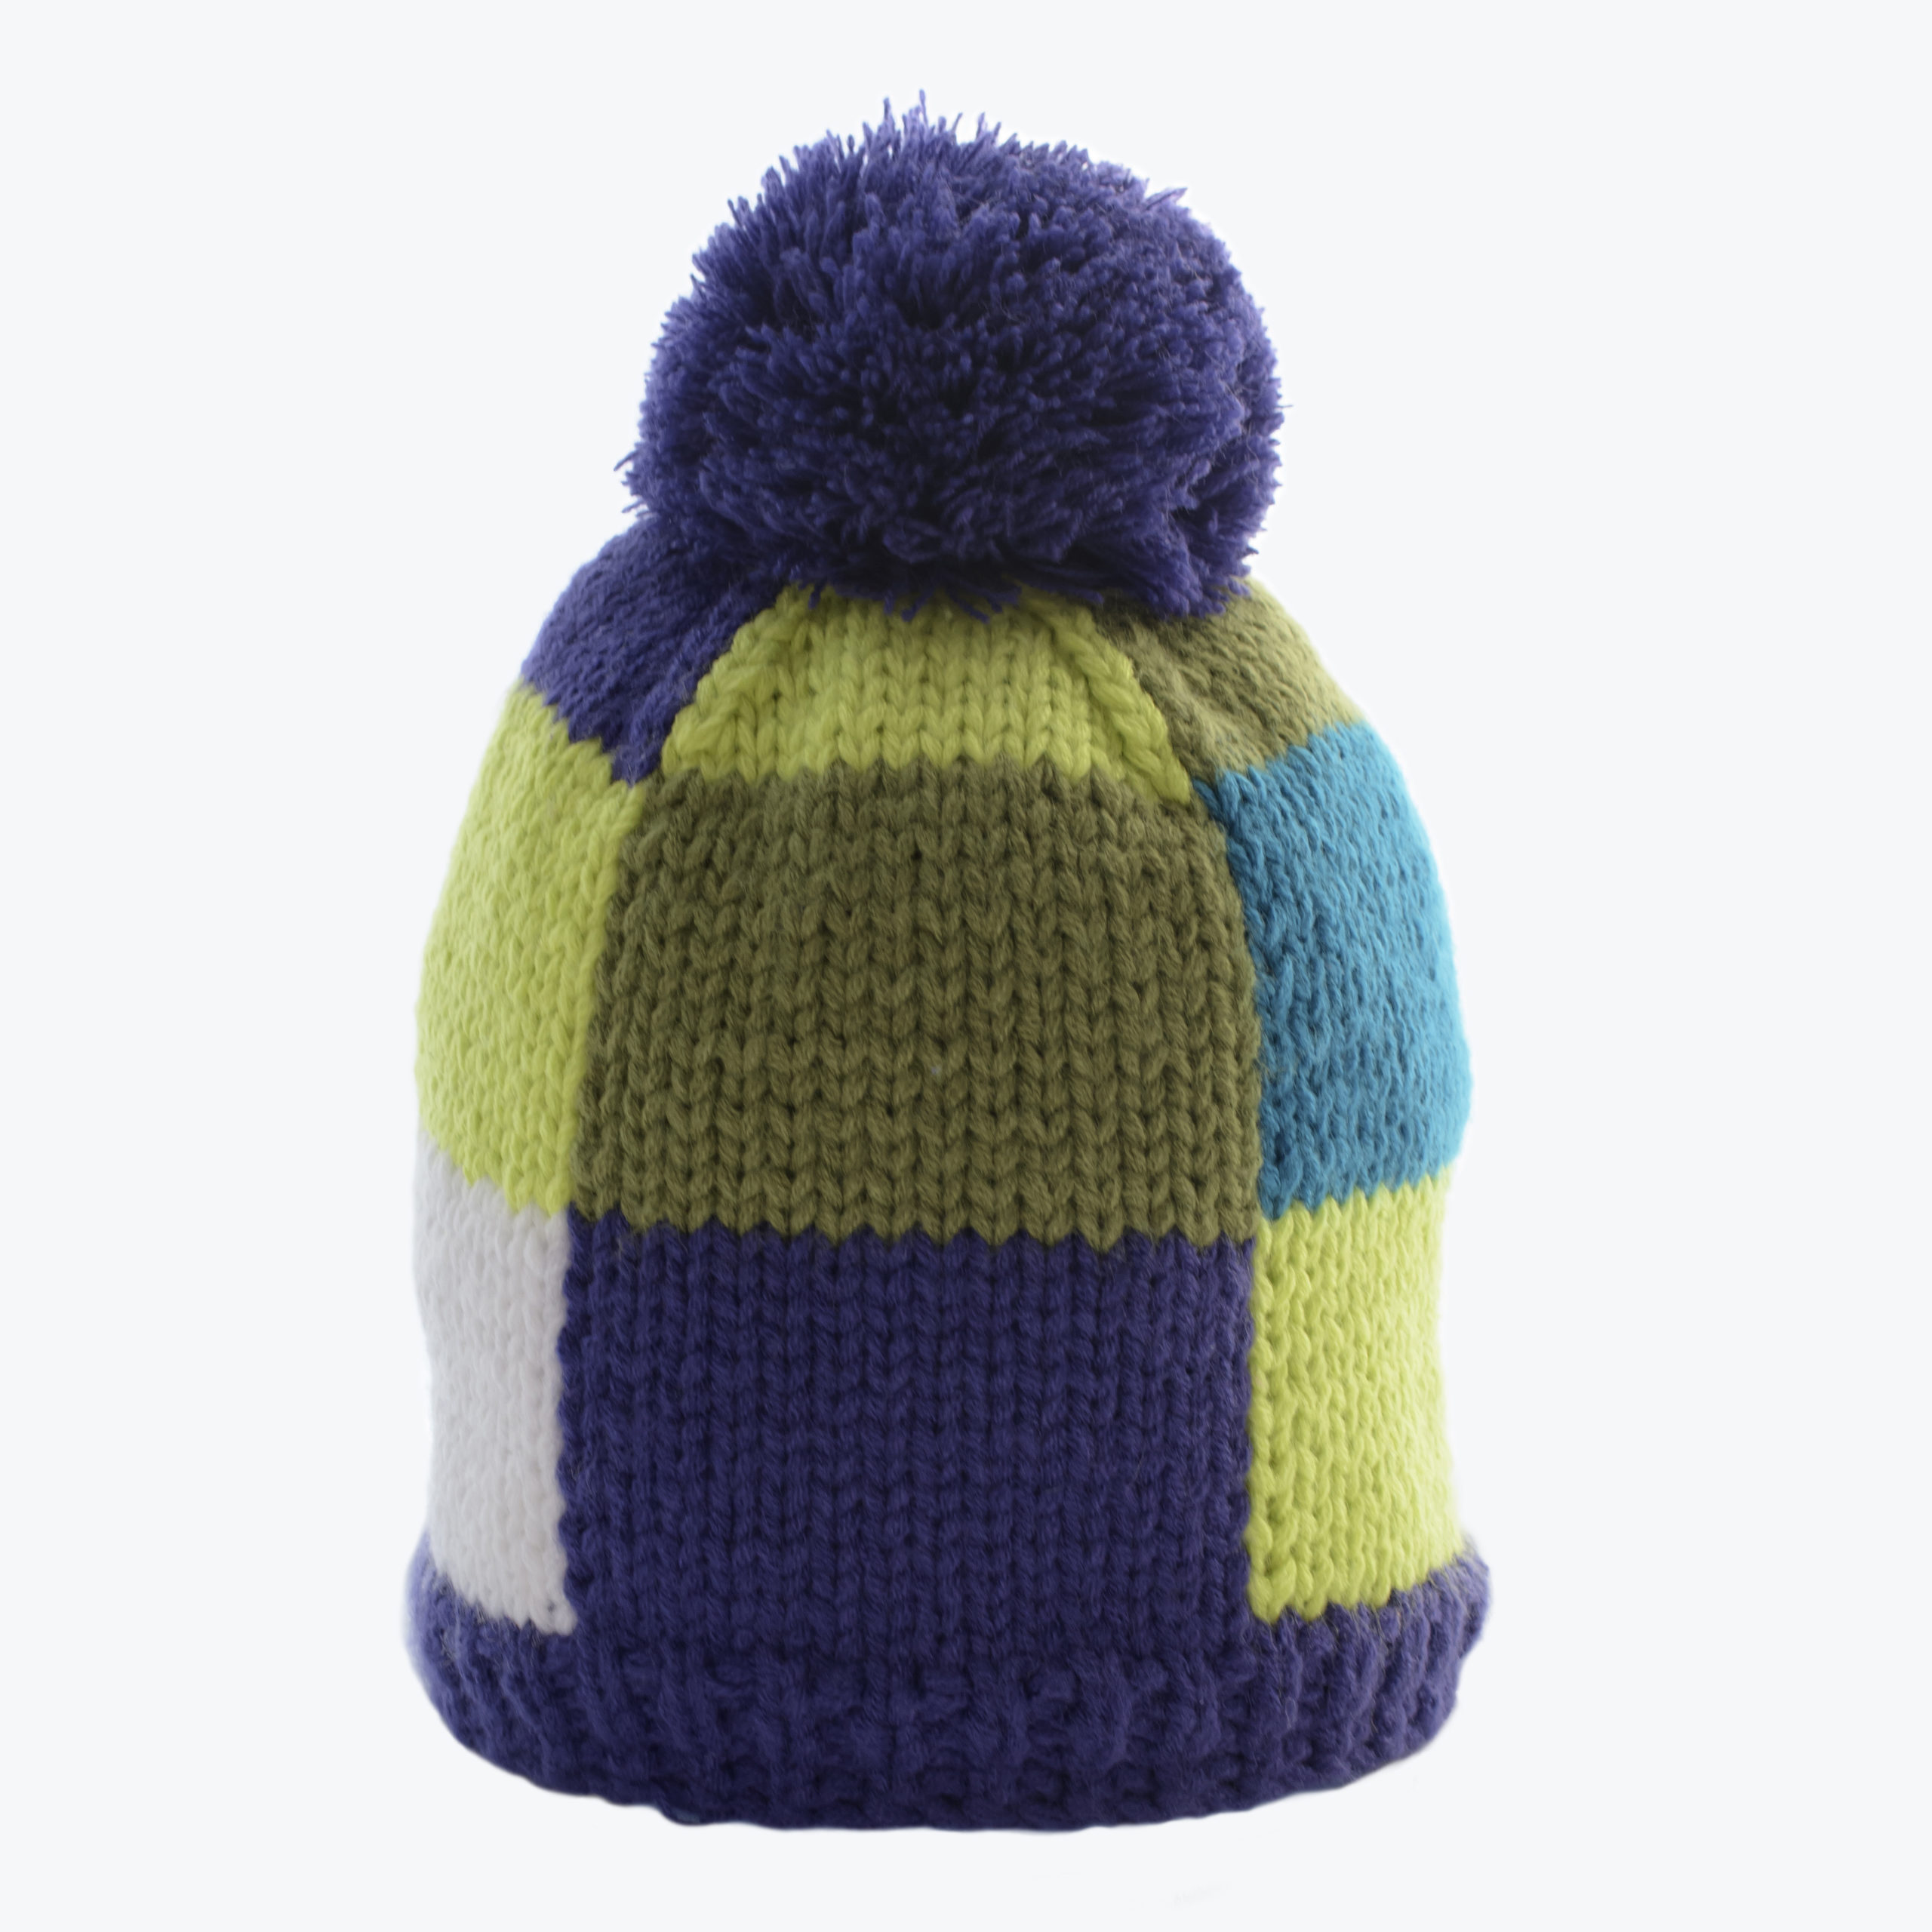 KID'S KNITTED BEANIE-BLUE/GREEN